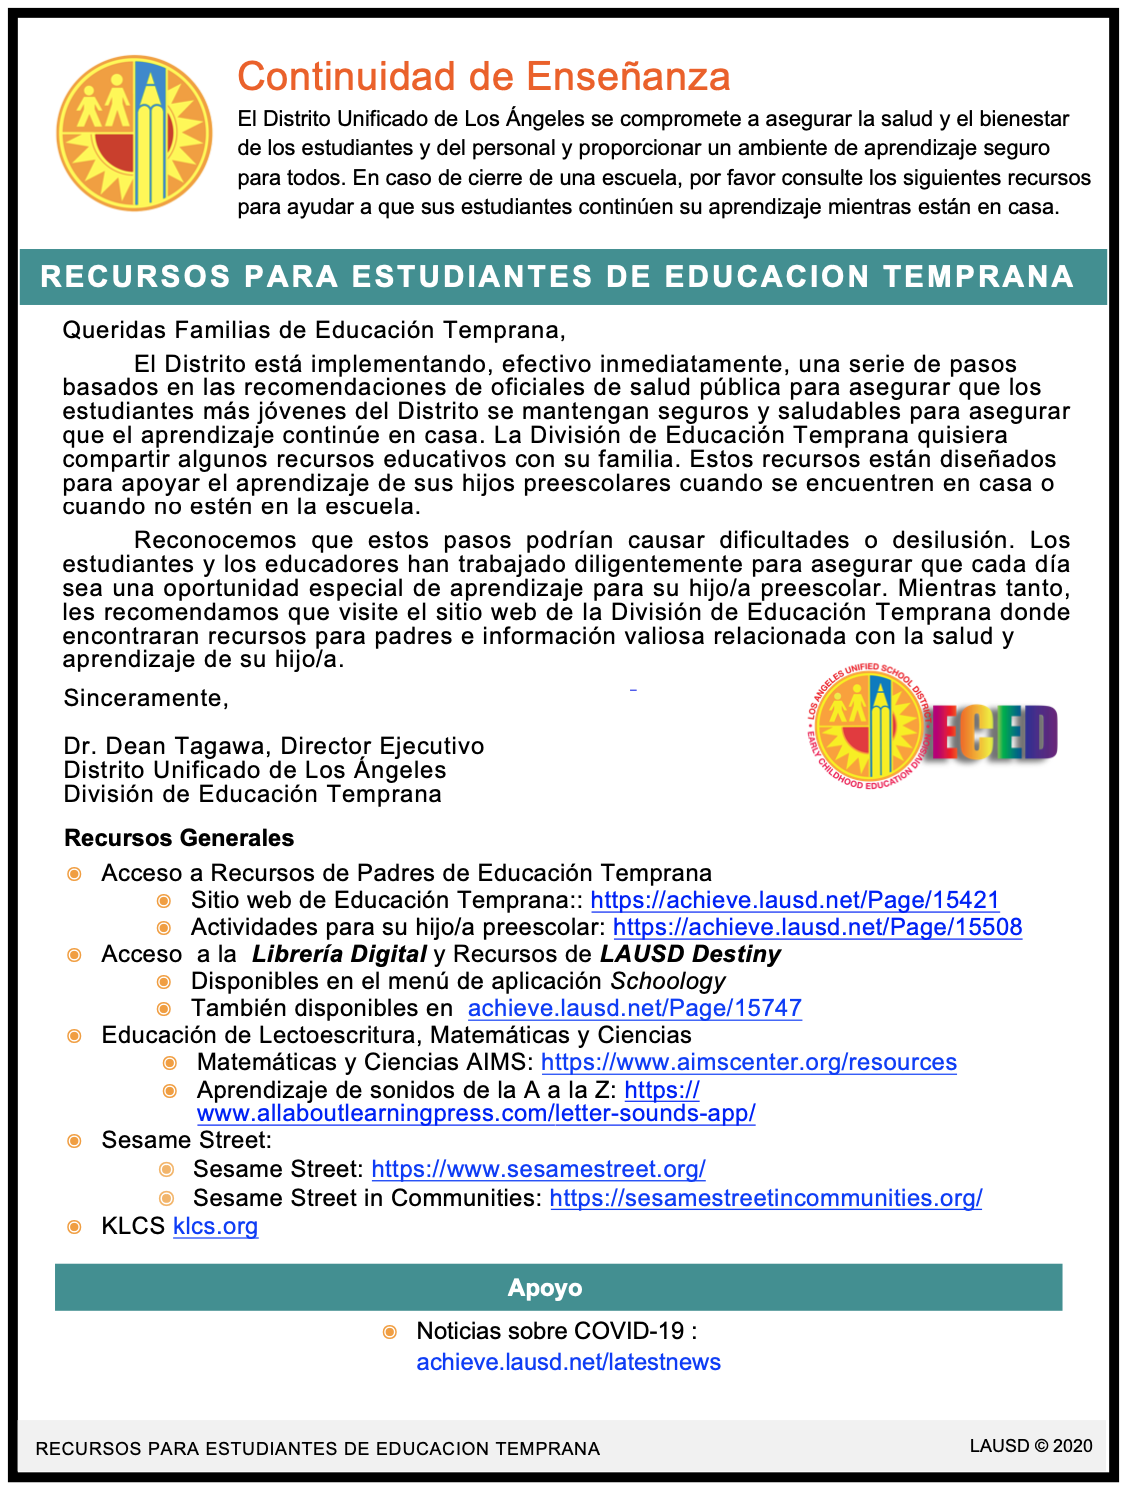 Flyer in Spanish for Early Education Student Resources